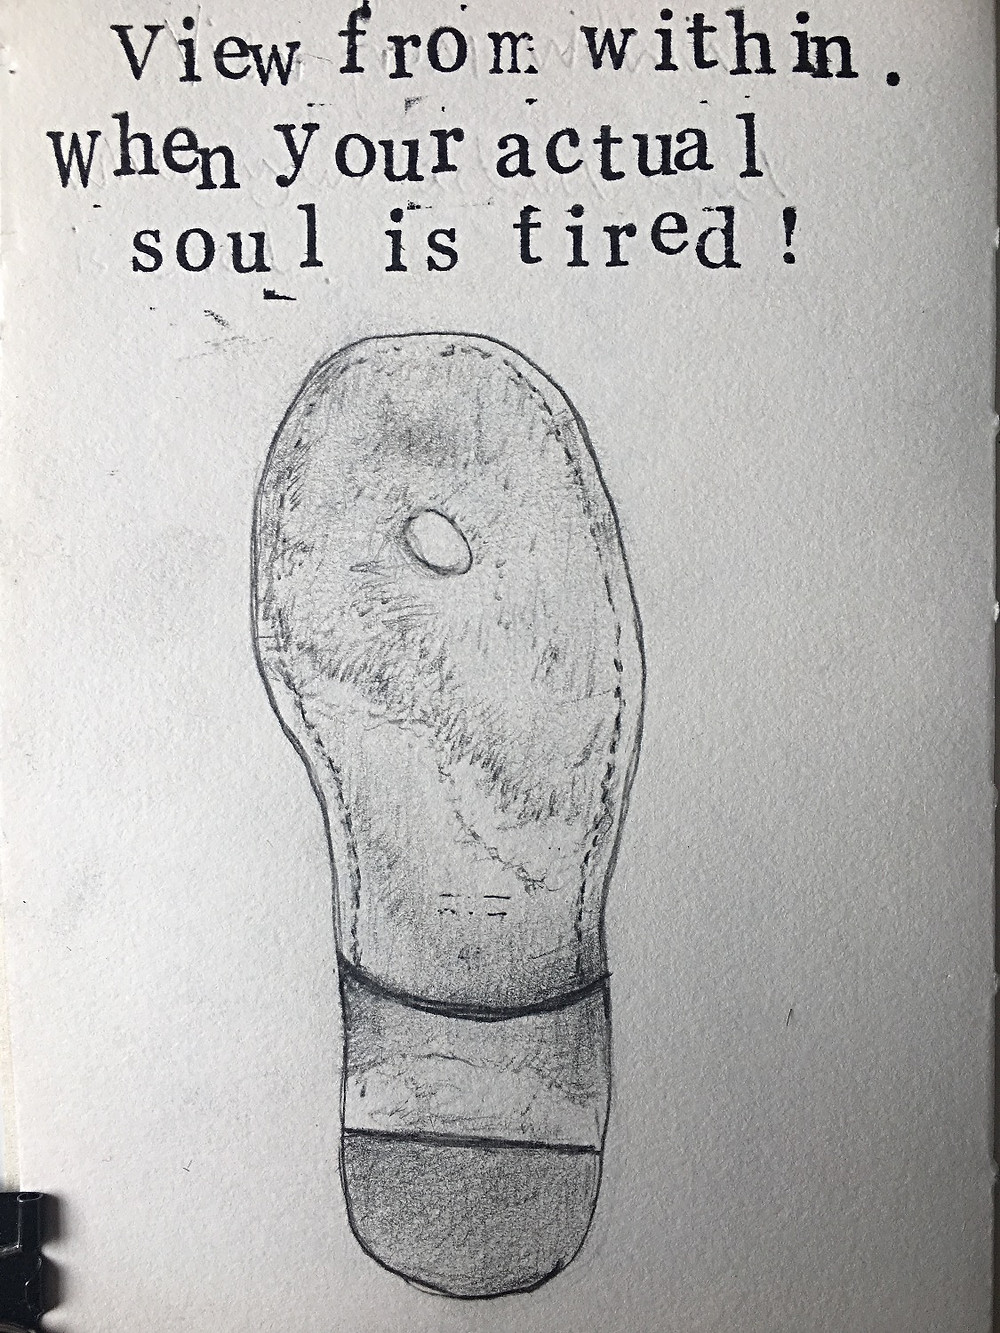 Drawing of soul/sole